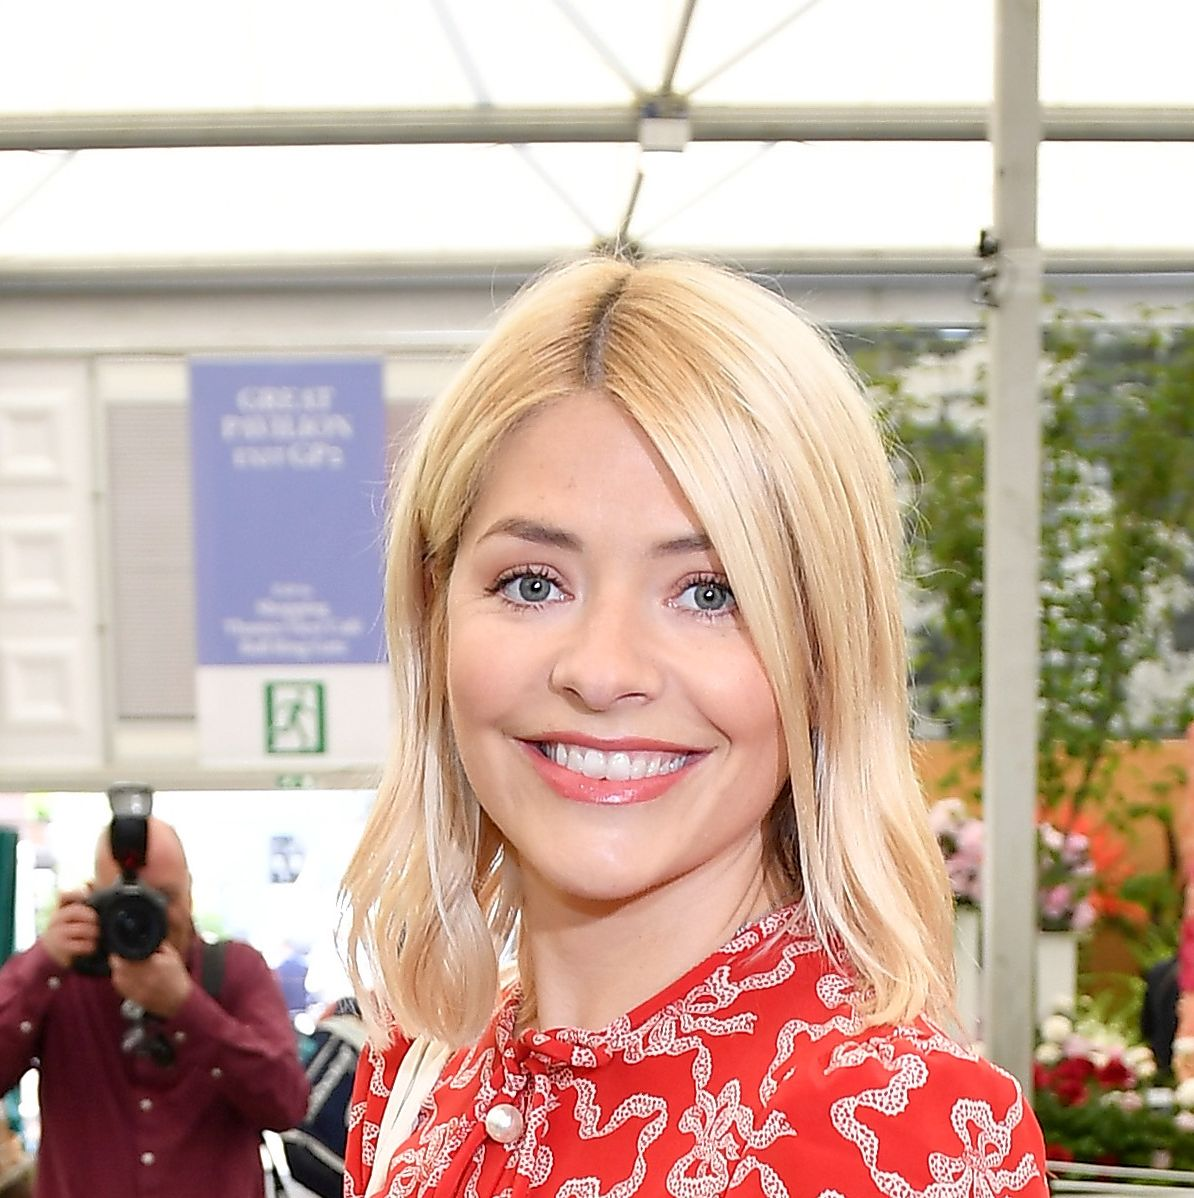 Holly Willoughby steps out wearing the top version of Meghan Markle's high street dress